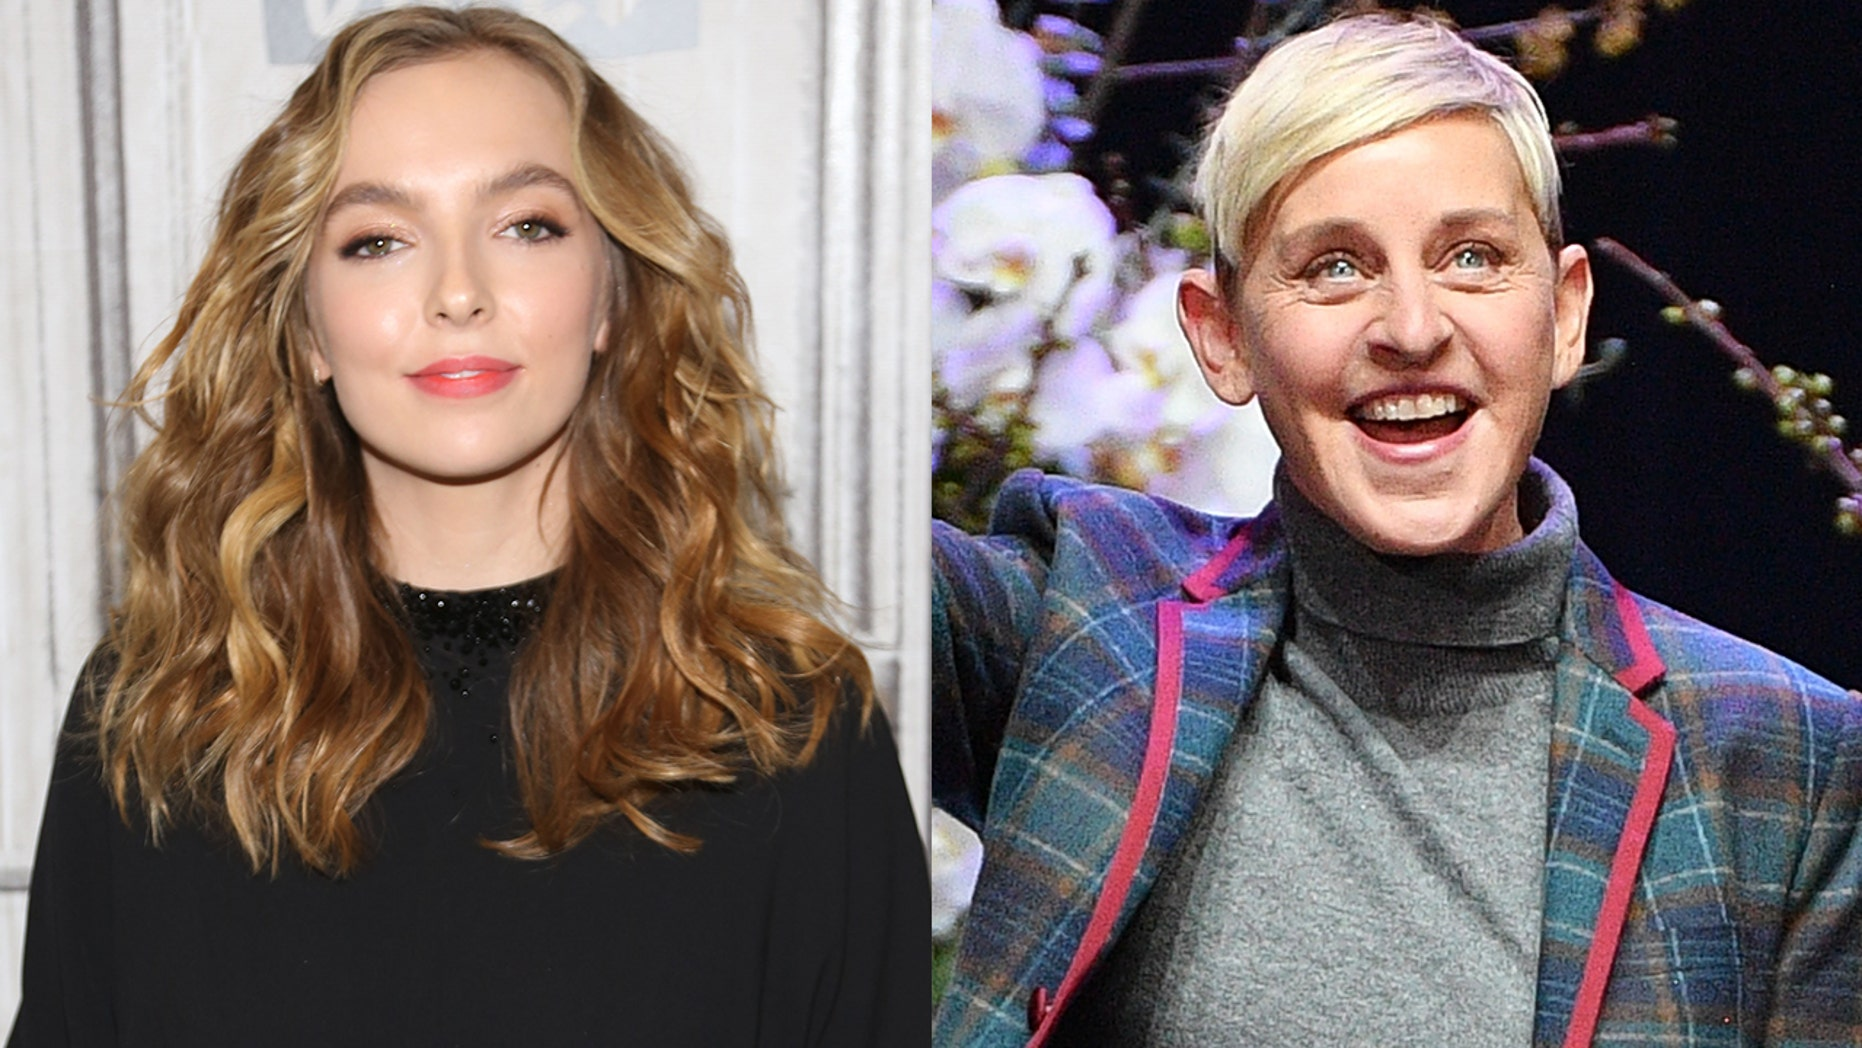 Ellen DeGeneres had an awkward moment with her guest, Jodie Comer, on her talk show.